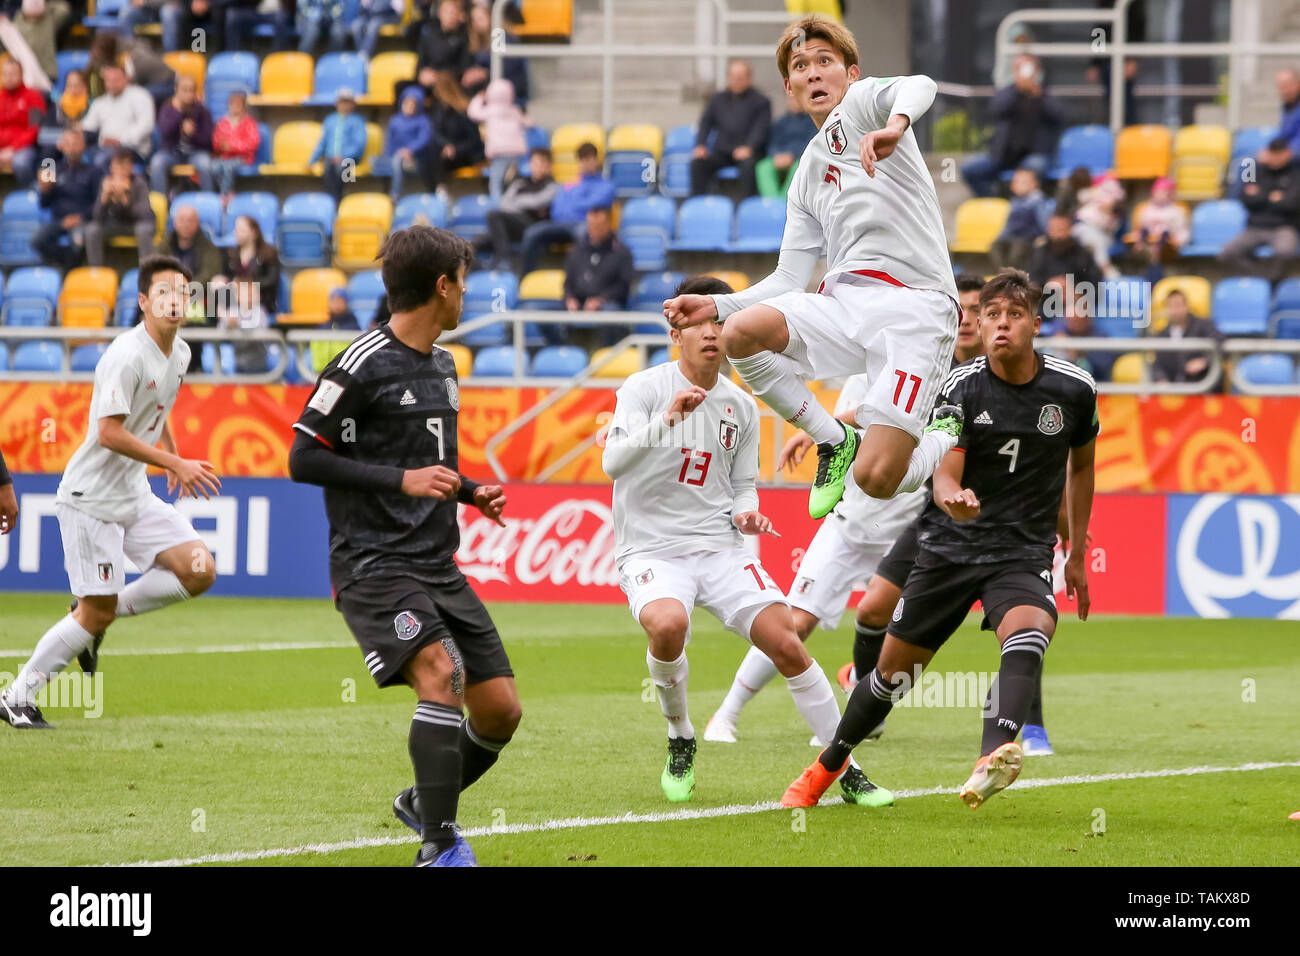 Gdynia Stadium, Gdynia, Poland - 26th May, 2019: Kyosuke Tagawa from Japan and Efrain Orona, Jose Macias from Mexico are seen in action during FIFA U-20 World Cup match between Mexico and Japan (GROUP B) in Gdynia. (Final score; Mexico 0:3 Japan) - Stock Image